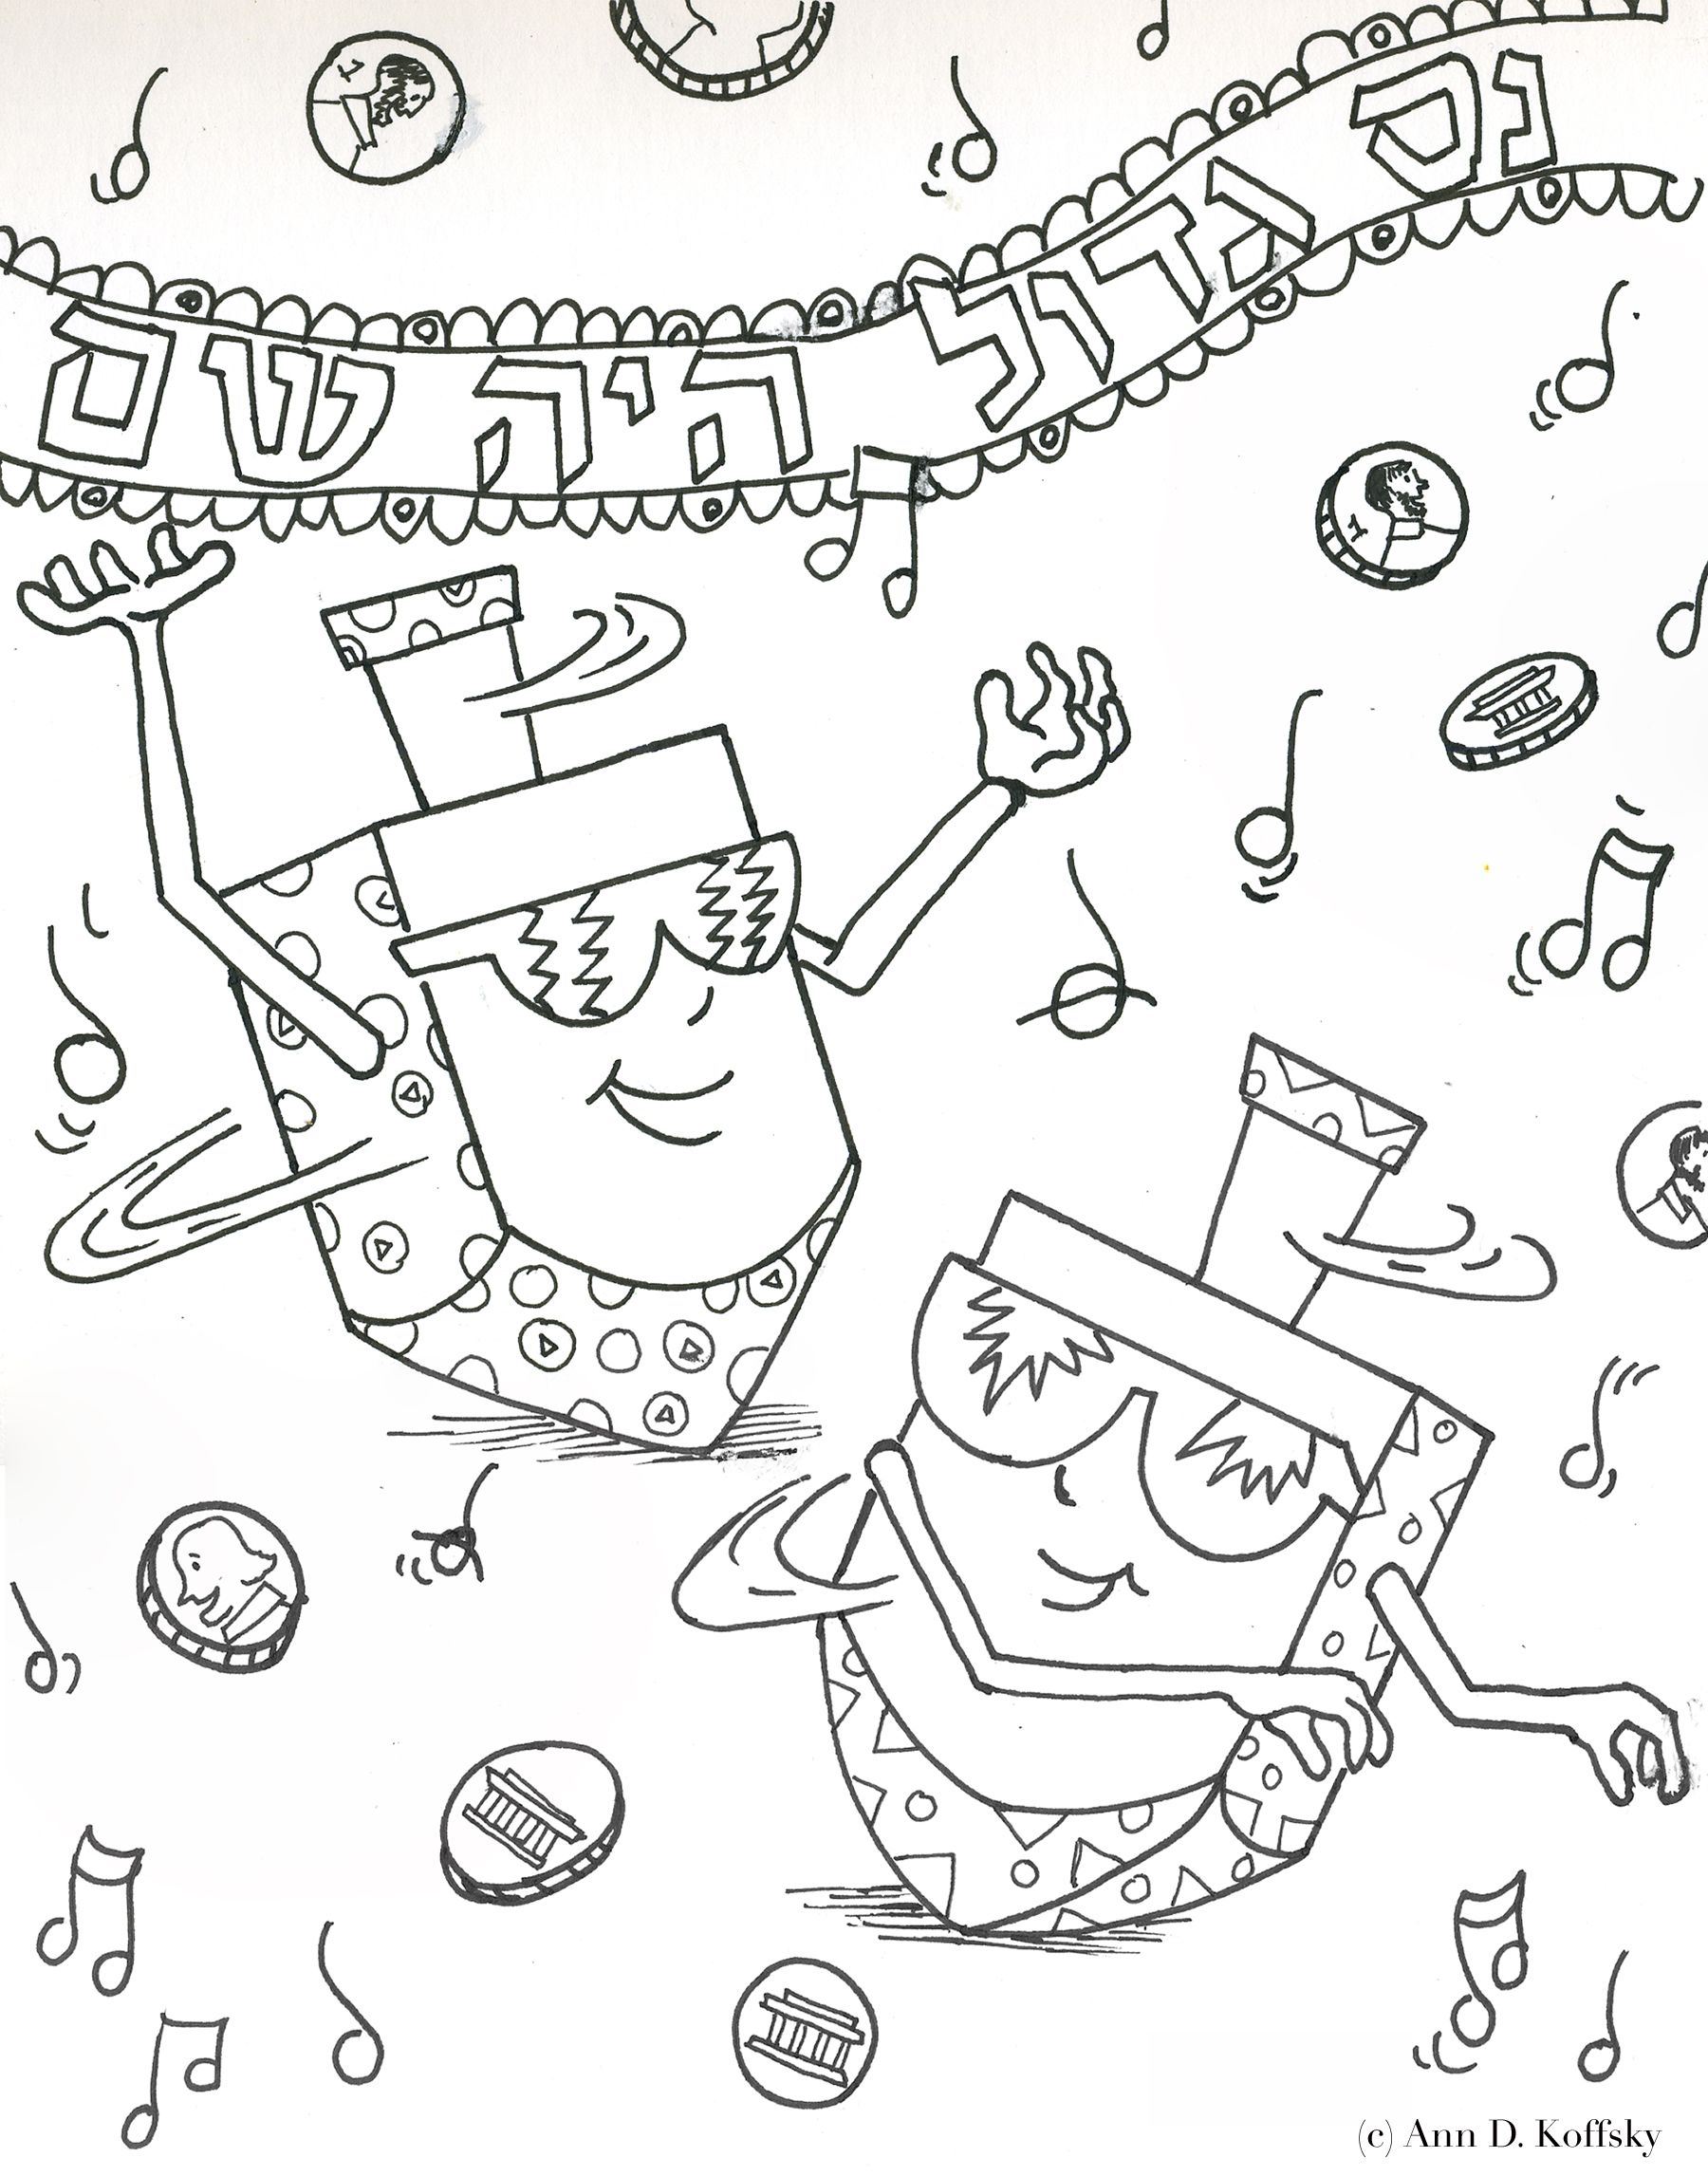 Lots Of Cute Coloring Pages For Hannukah Passover Purim And More Lots Of Great Ideas On This